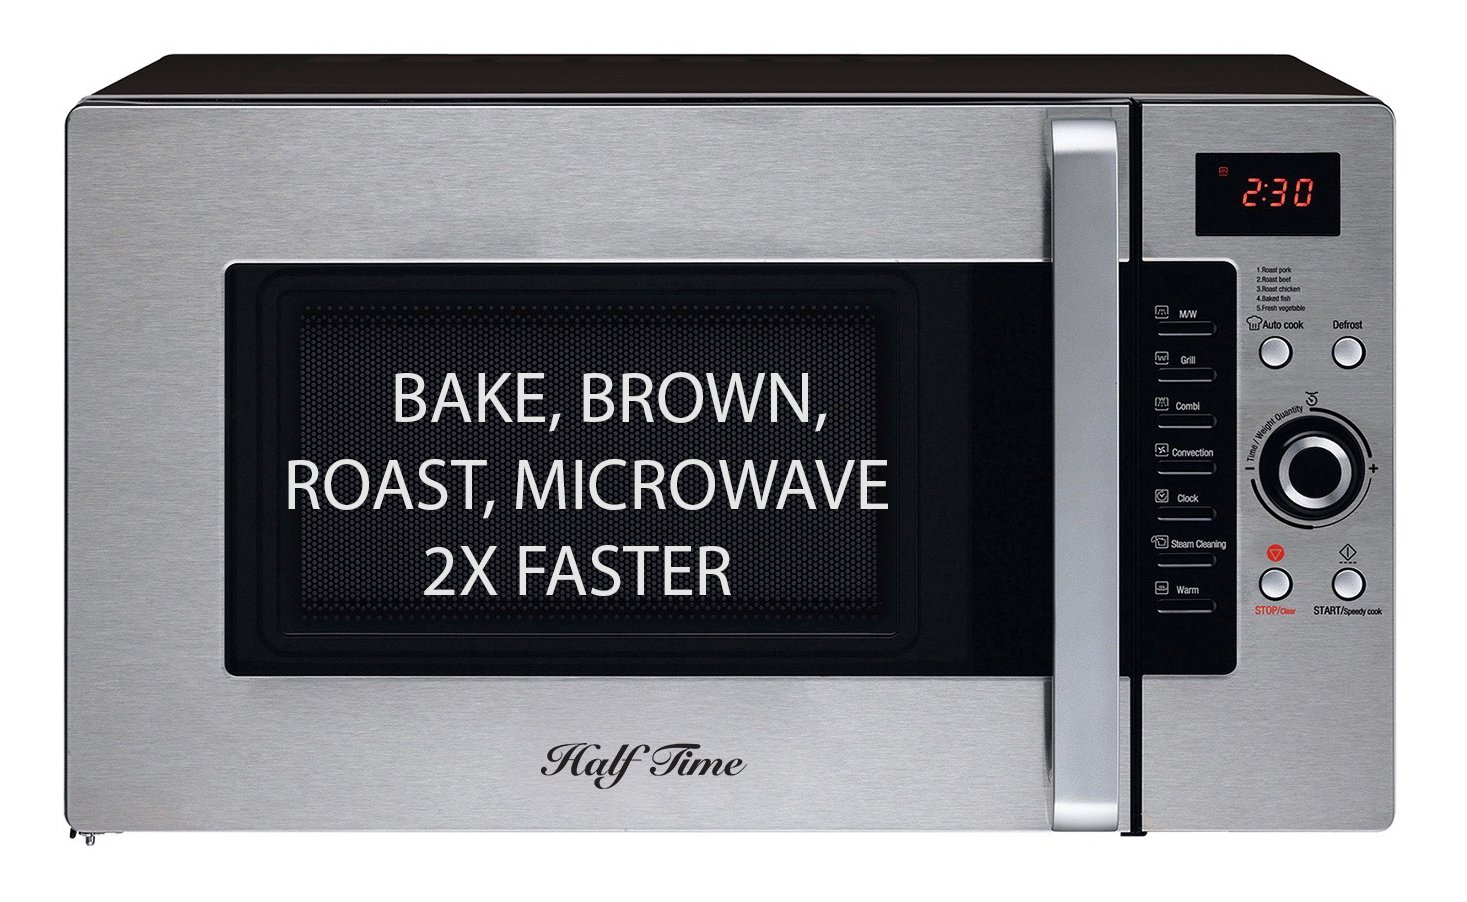 Half Time Convection Microwave Oven, Bake, Brown, Roast in Half the Time, Countertop Stainless Steel/Black. 2 Year Manufacturer